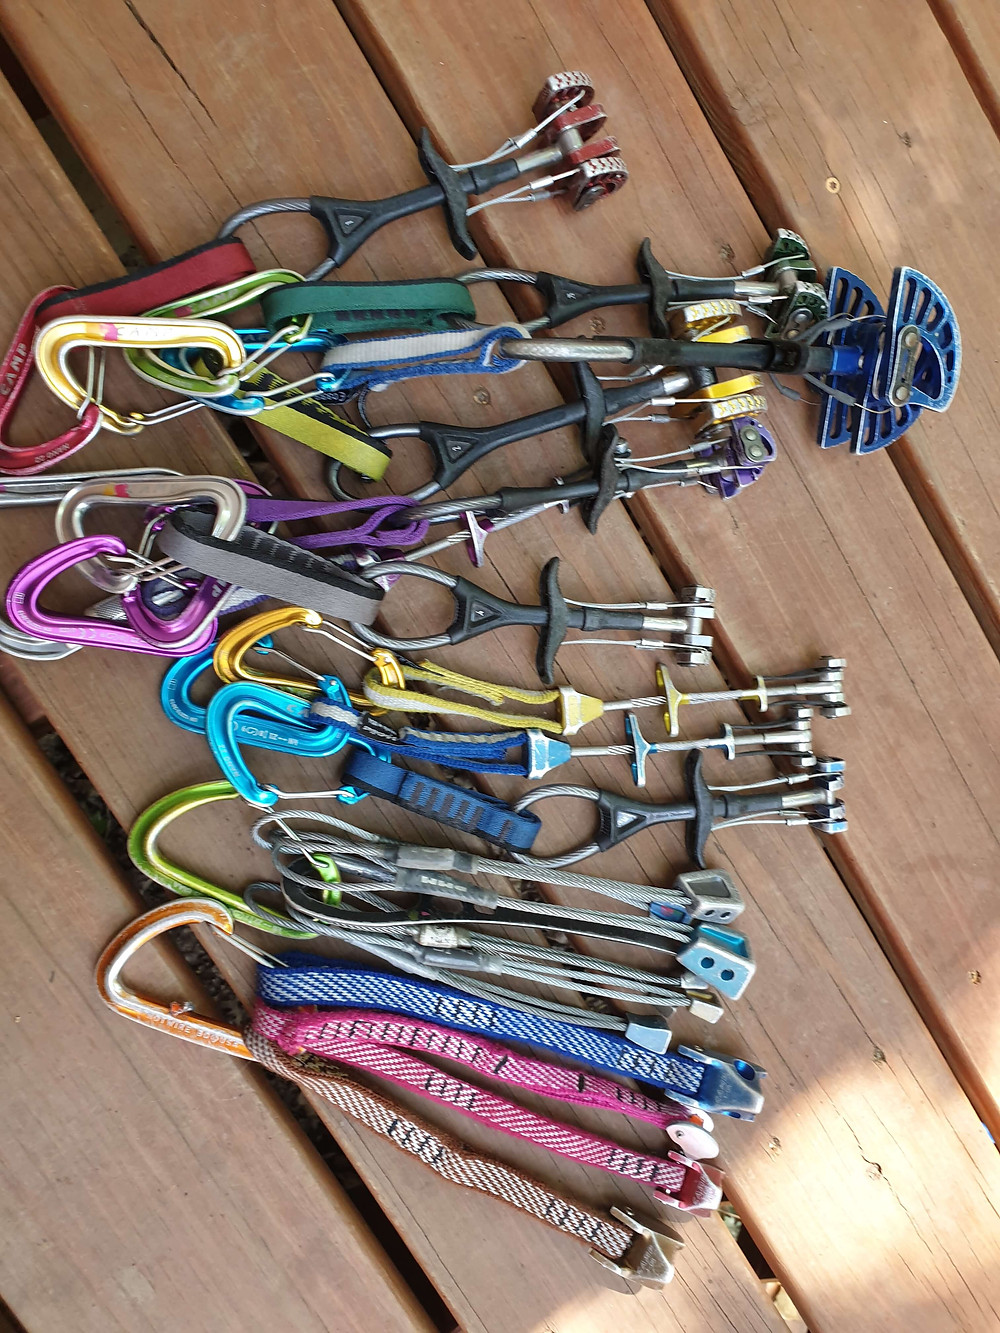 A trad rack from .1 to 3 as well as tri-cam's